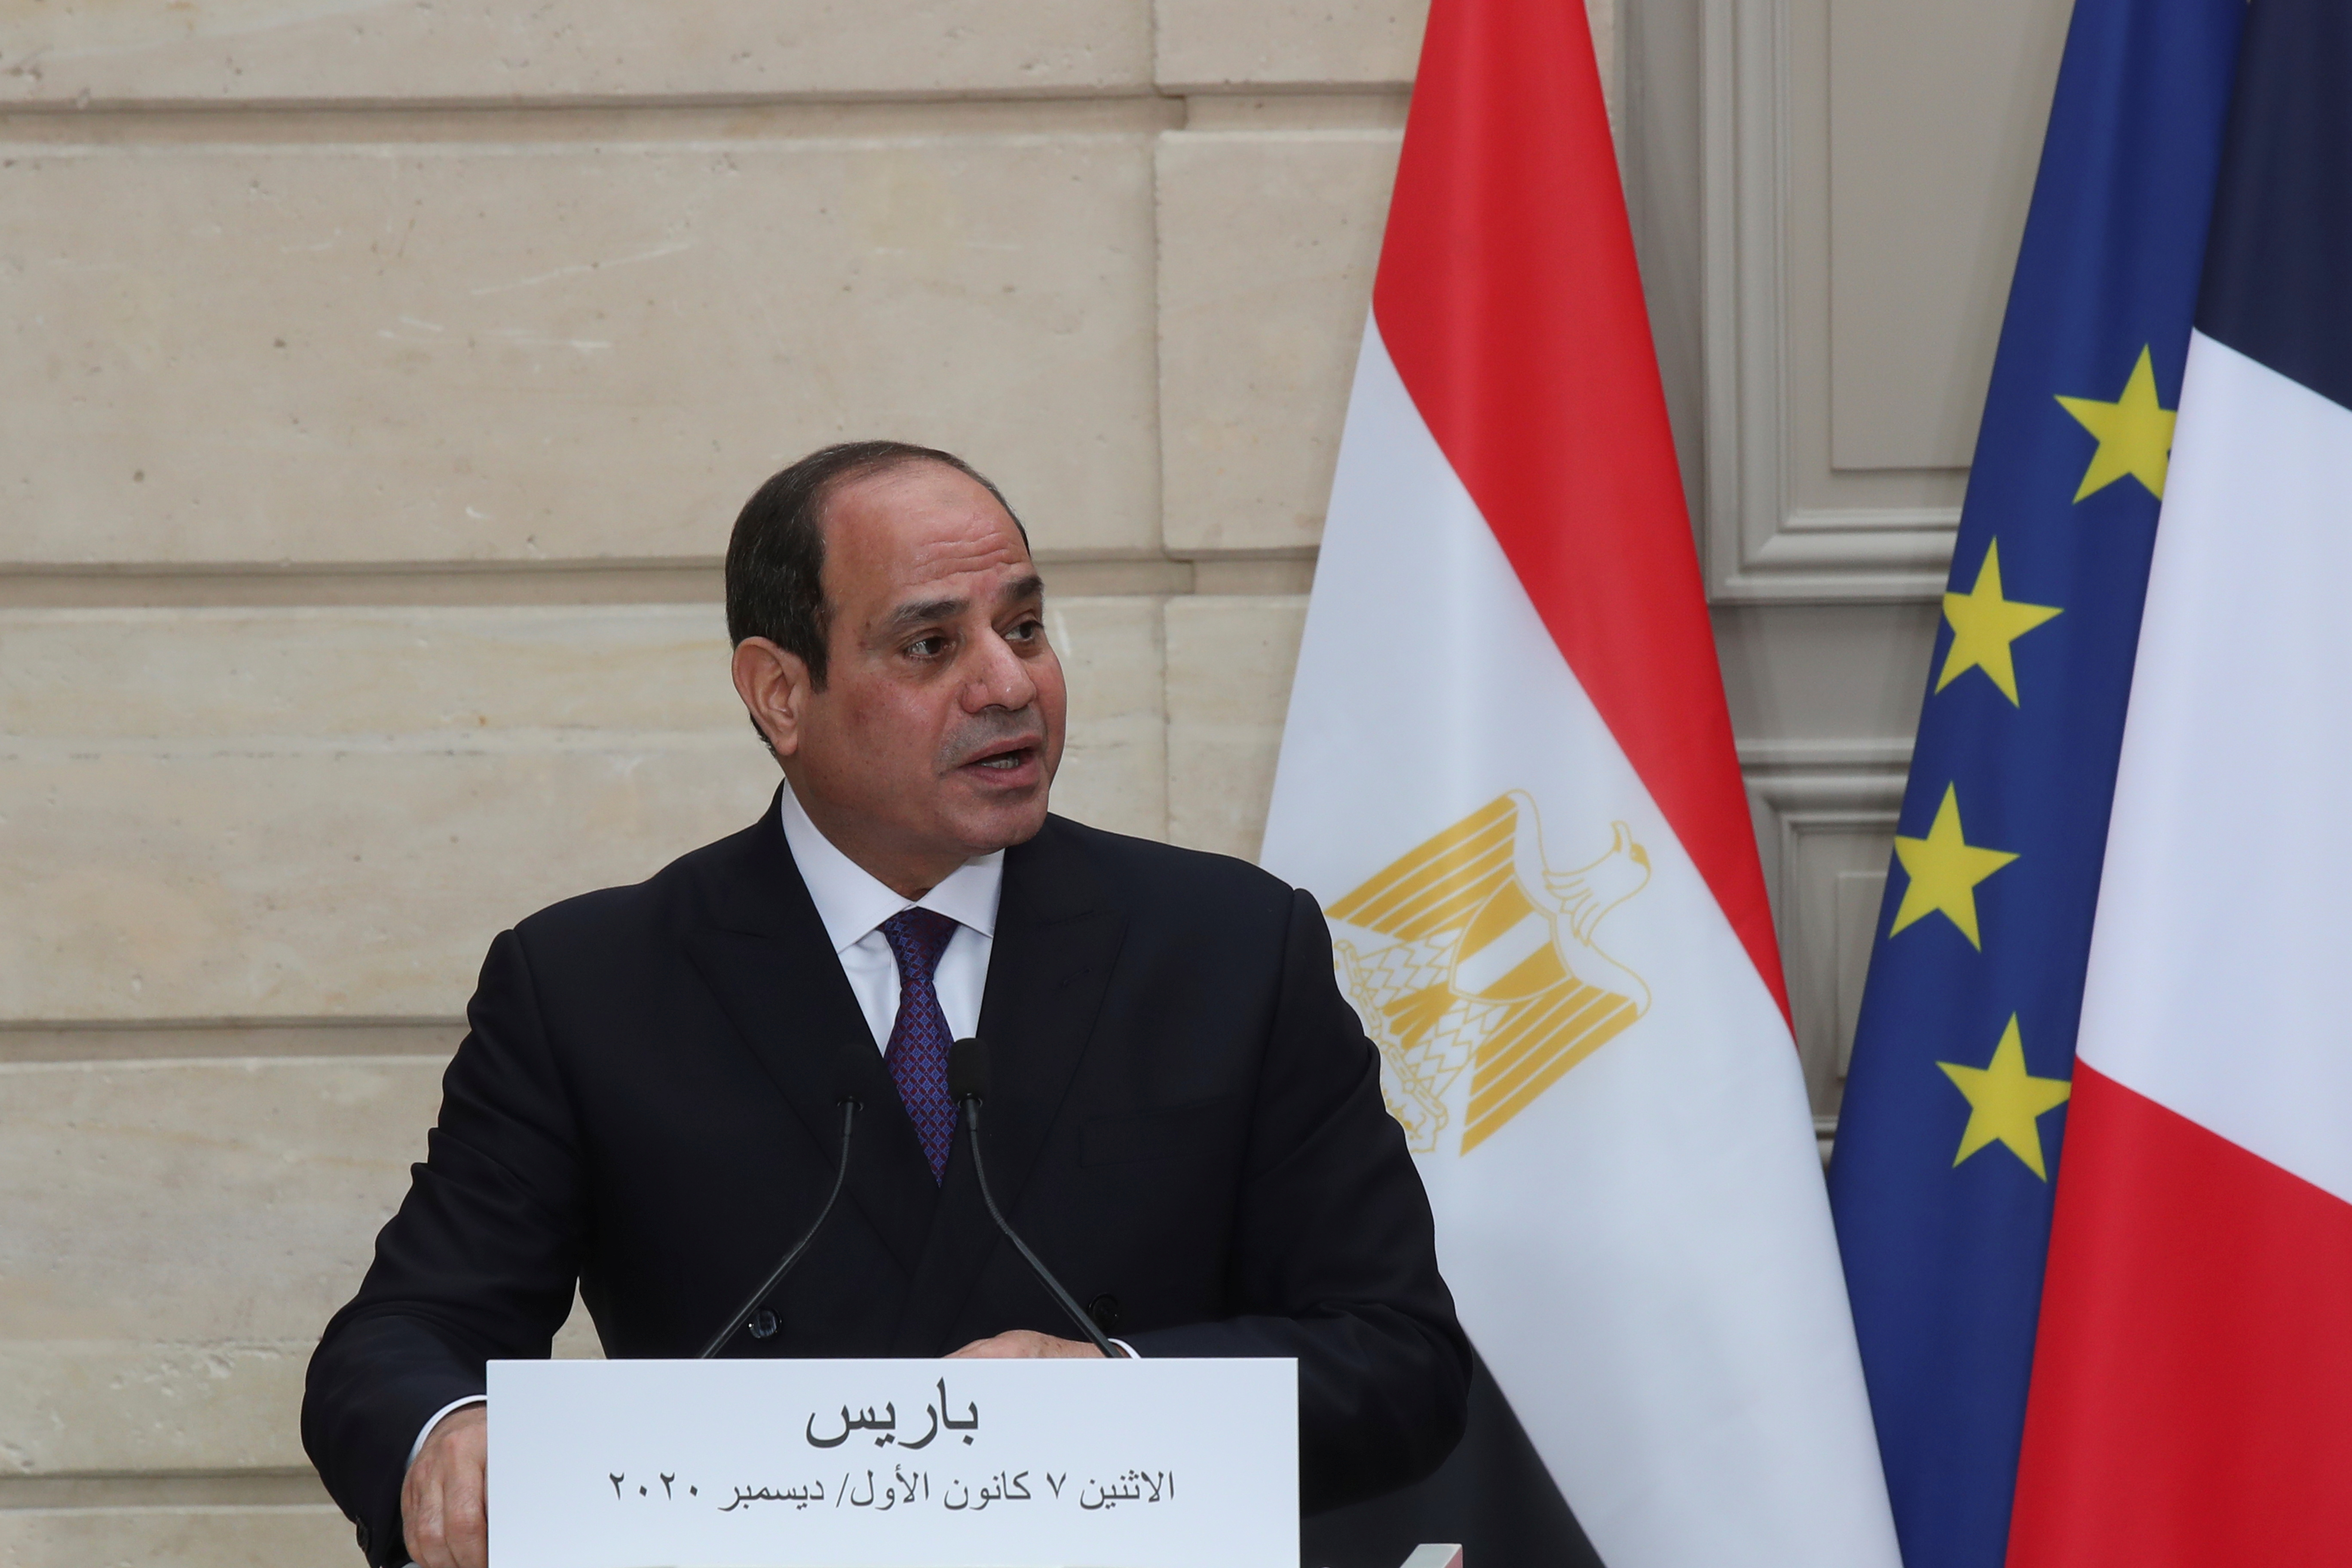 Egyptian President Abdel Fattah al-Sisi speaks during a joint news conference with French President Emmanuel Macron at the Elysee palace, France December 7, 2020.  Michel Euler/Pool via REUTERS